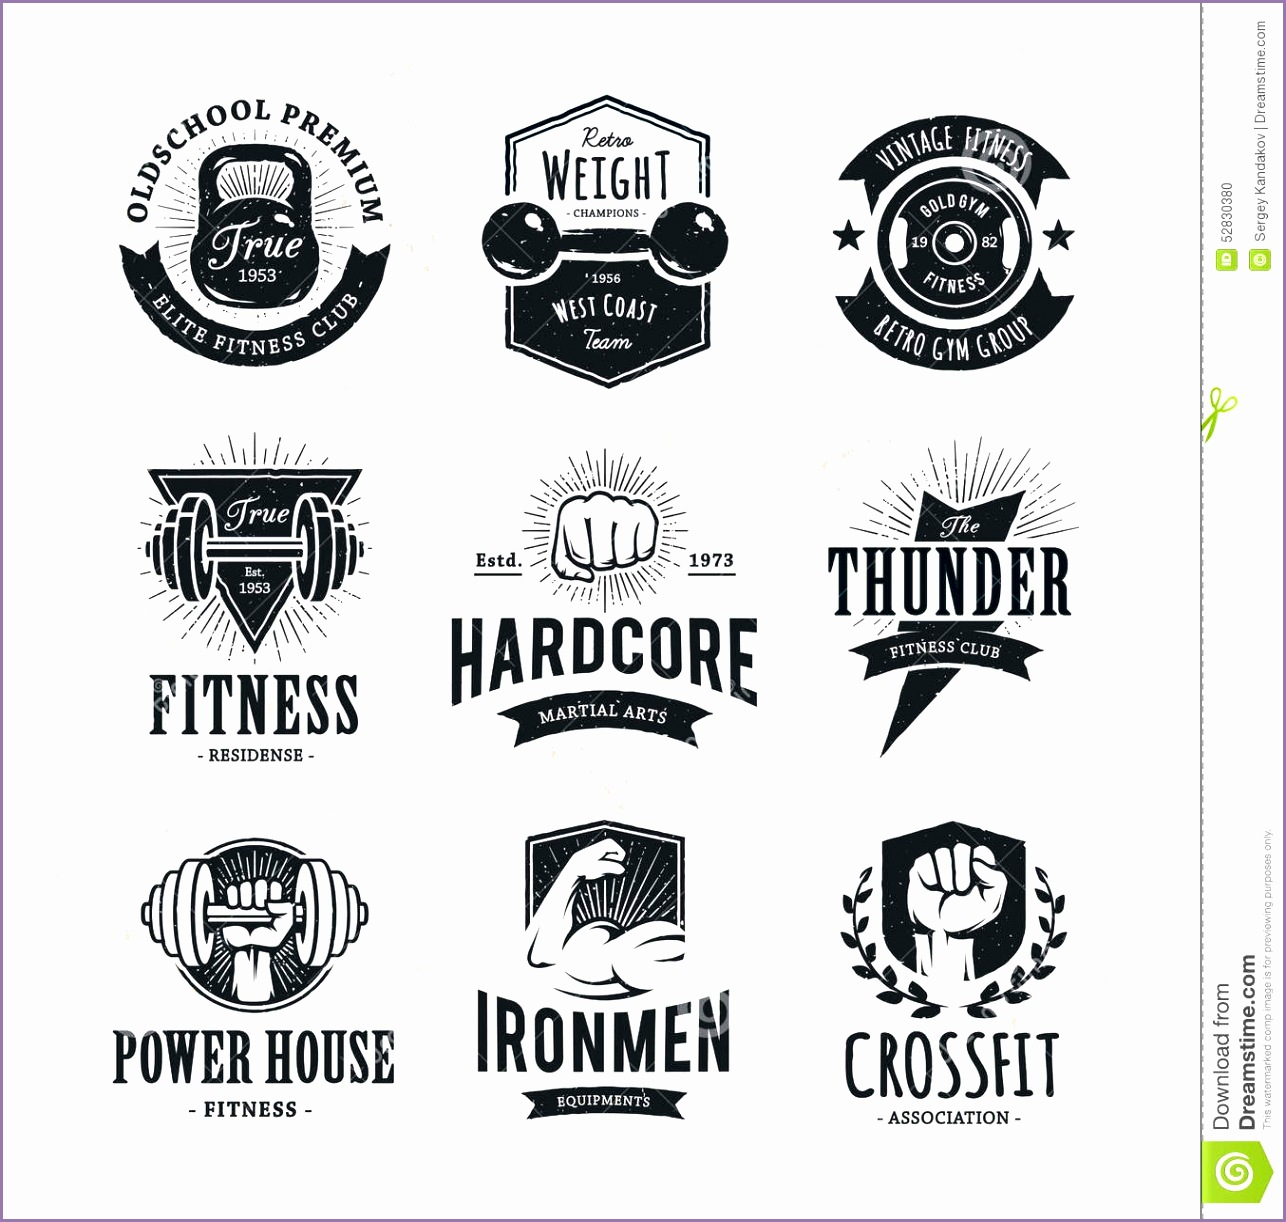 Gym logo · vintage boxing design Google Search